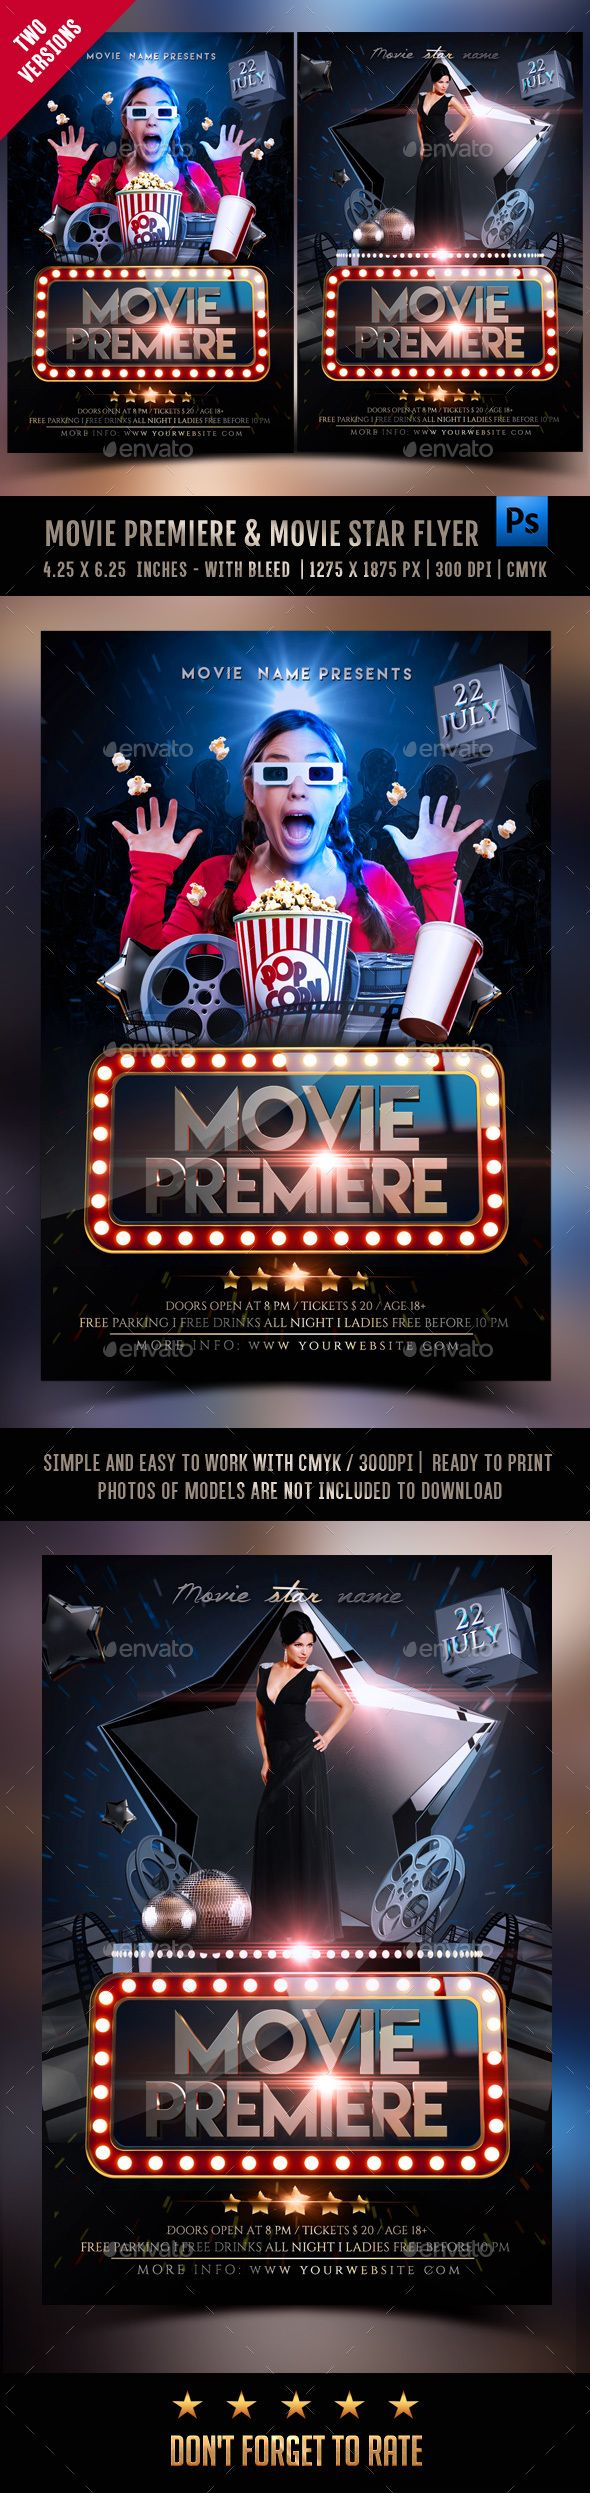 Movie Premiere & Movie Star Flyer  PSD Template • Download ➝ https://graphicriver.net/item/movie-premiere-movie-star-flyer/17165679?ref=pxcr